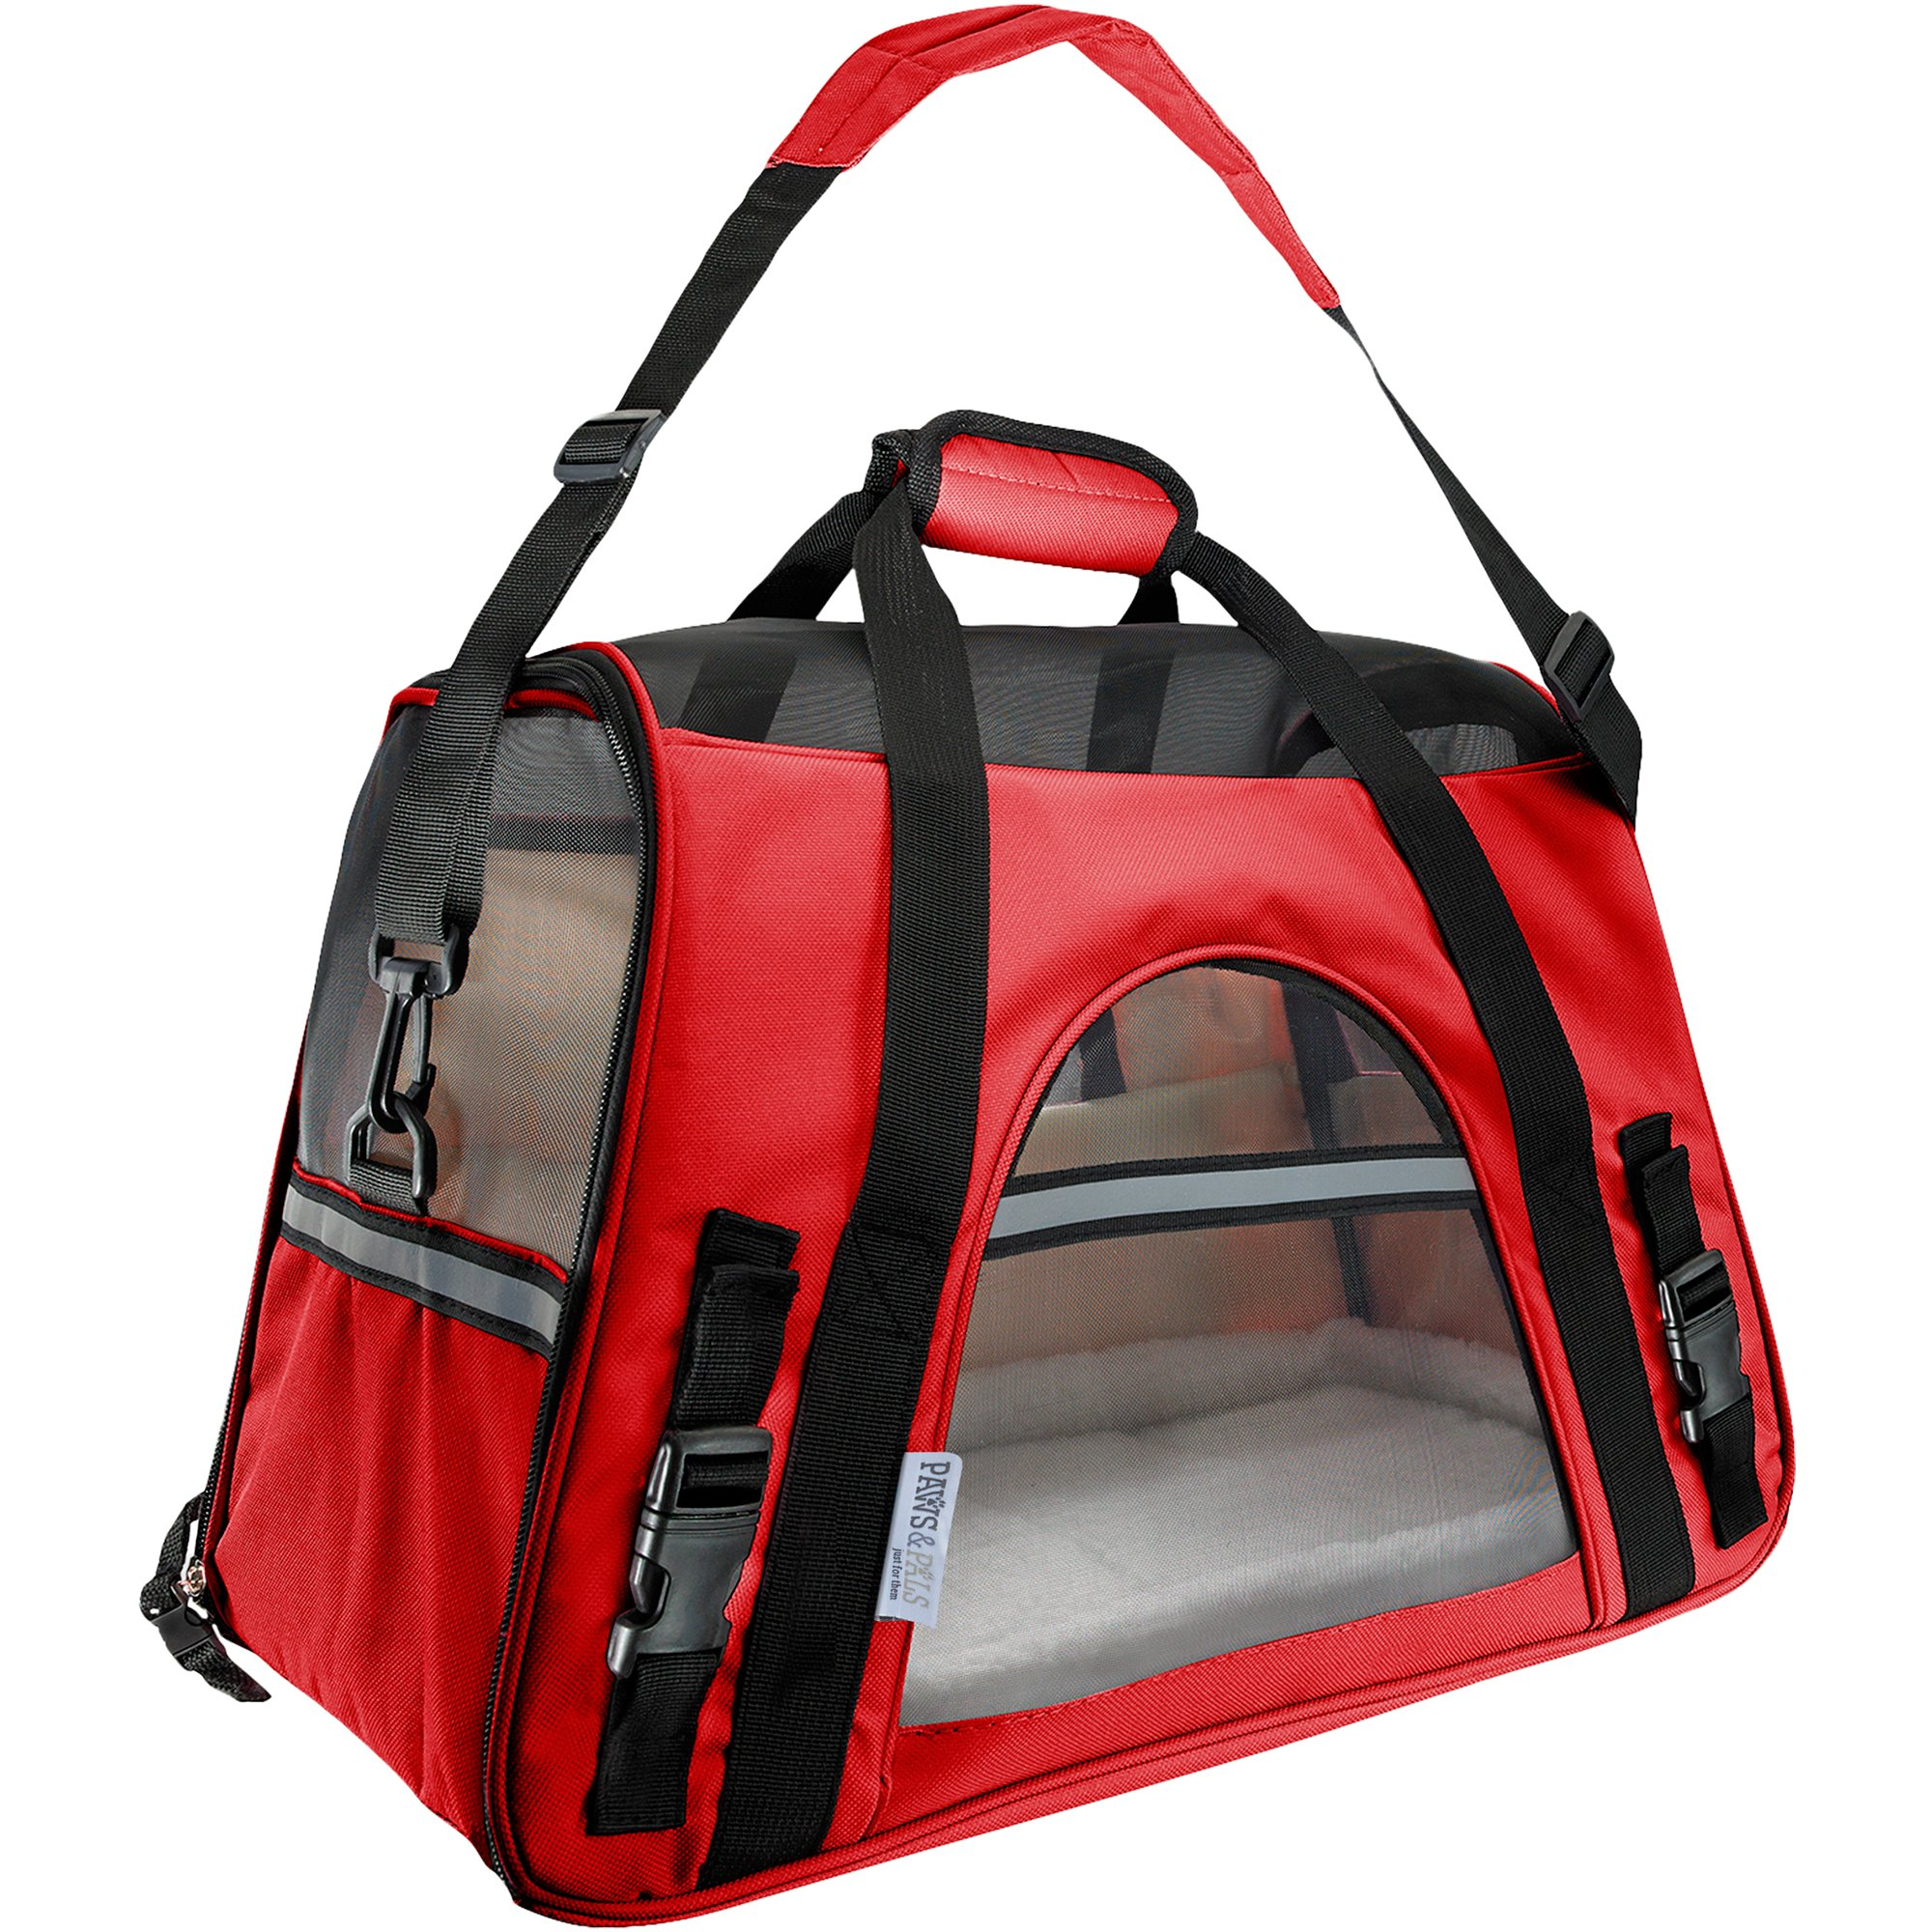 6b5ab2dfdfaf Paws & Pals Red Pet Carrier | Petco